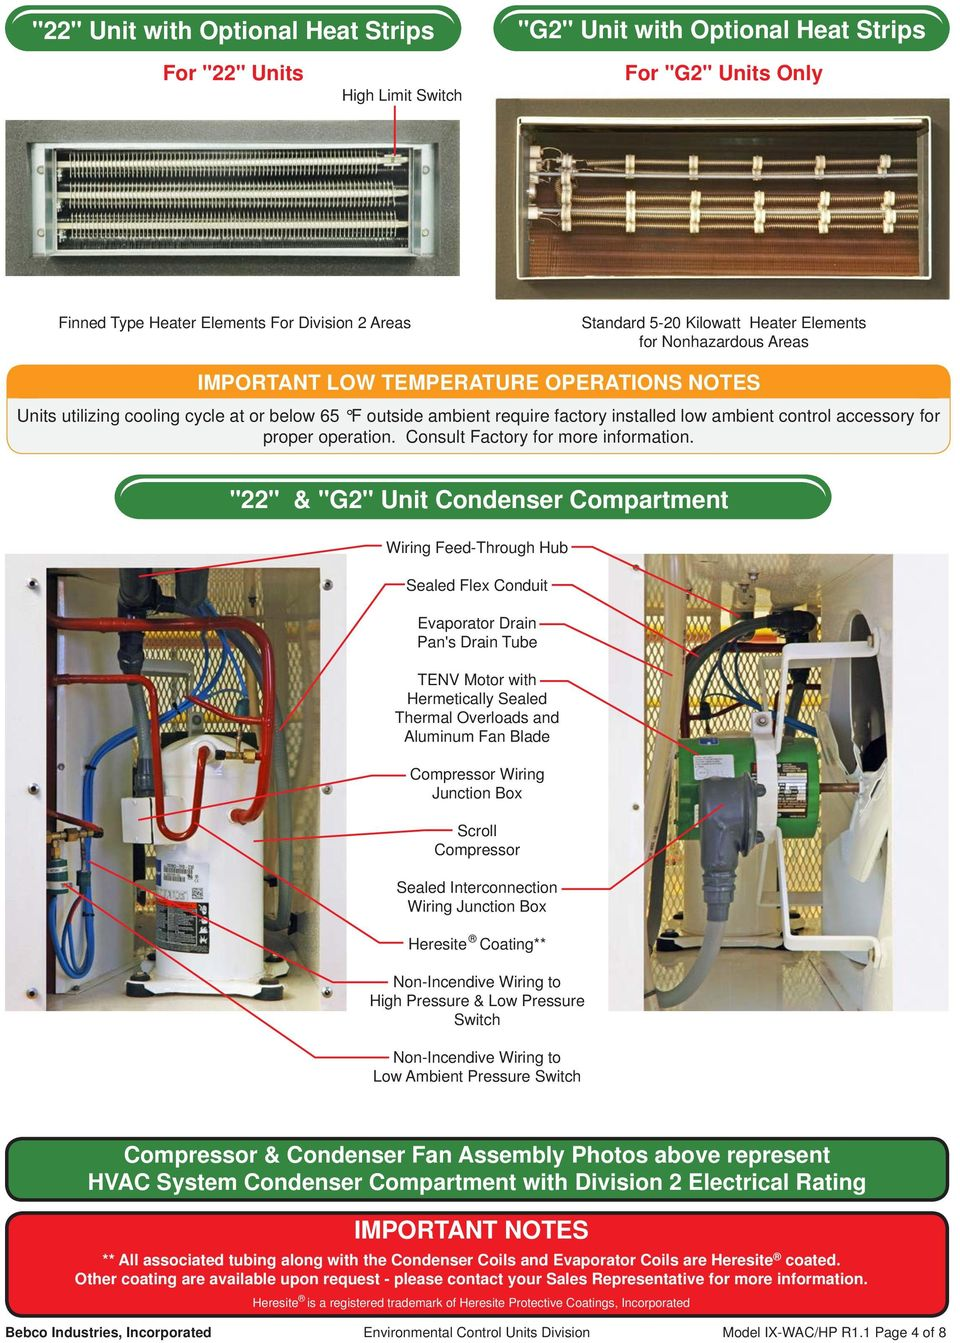 Model Ix Wac Hp Air Conditioners Heat Pumps For Highly Corrosive Heating Ac Wiring To Carrier Strips Accessory Proper Operation Consult Factory More Information